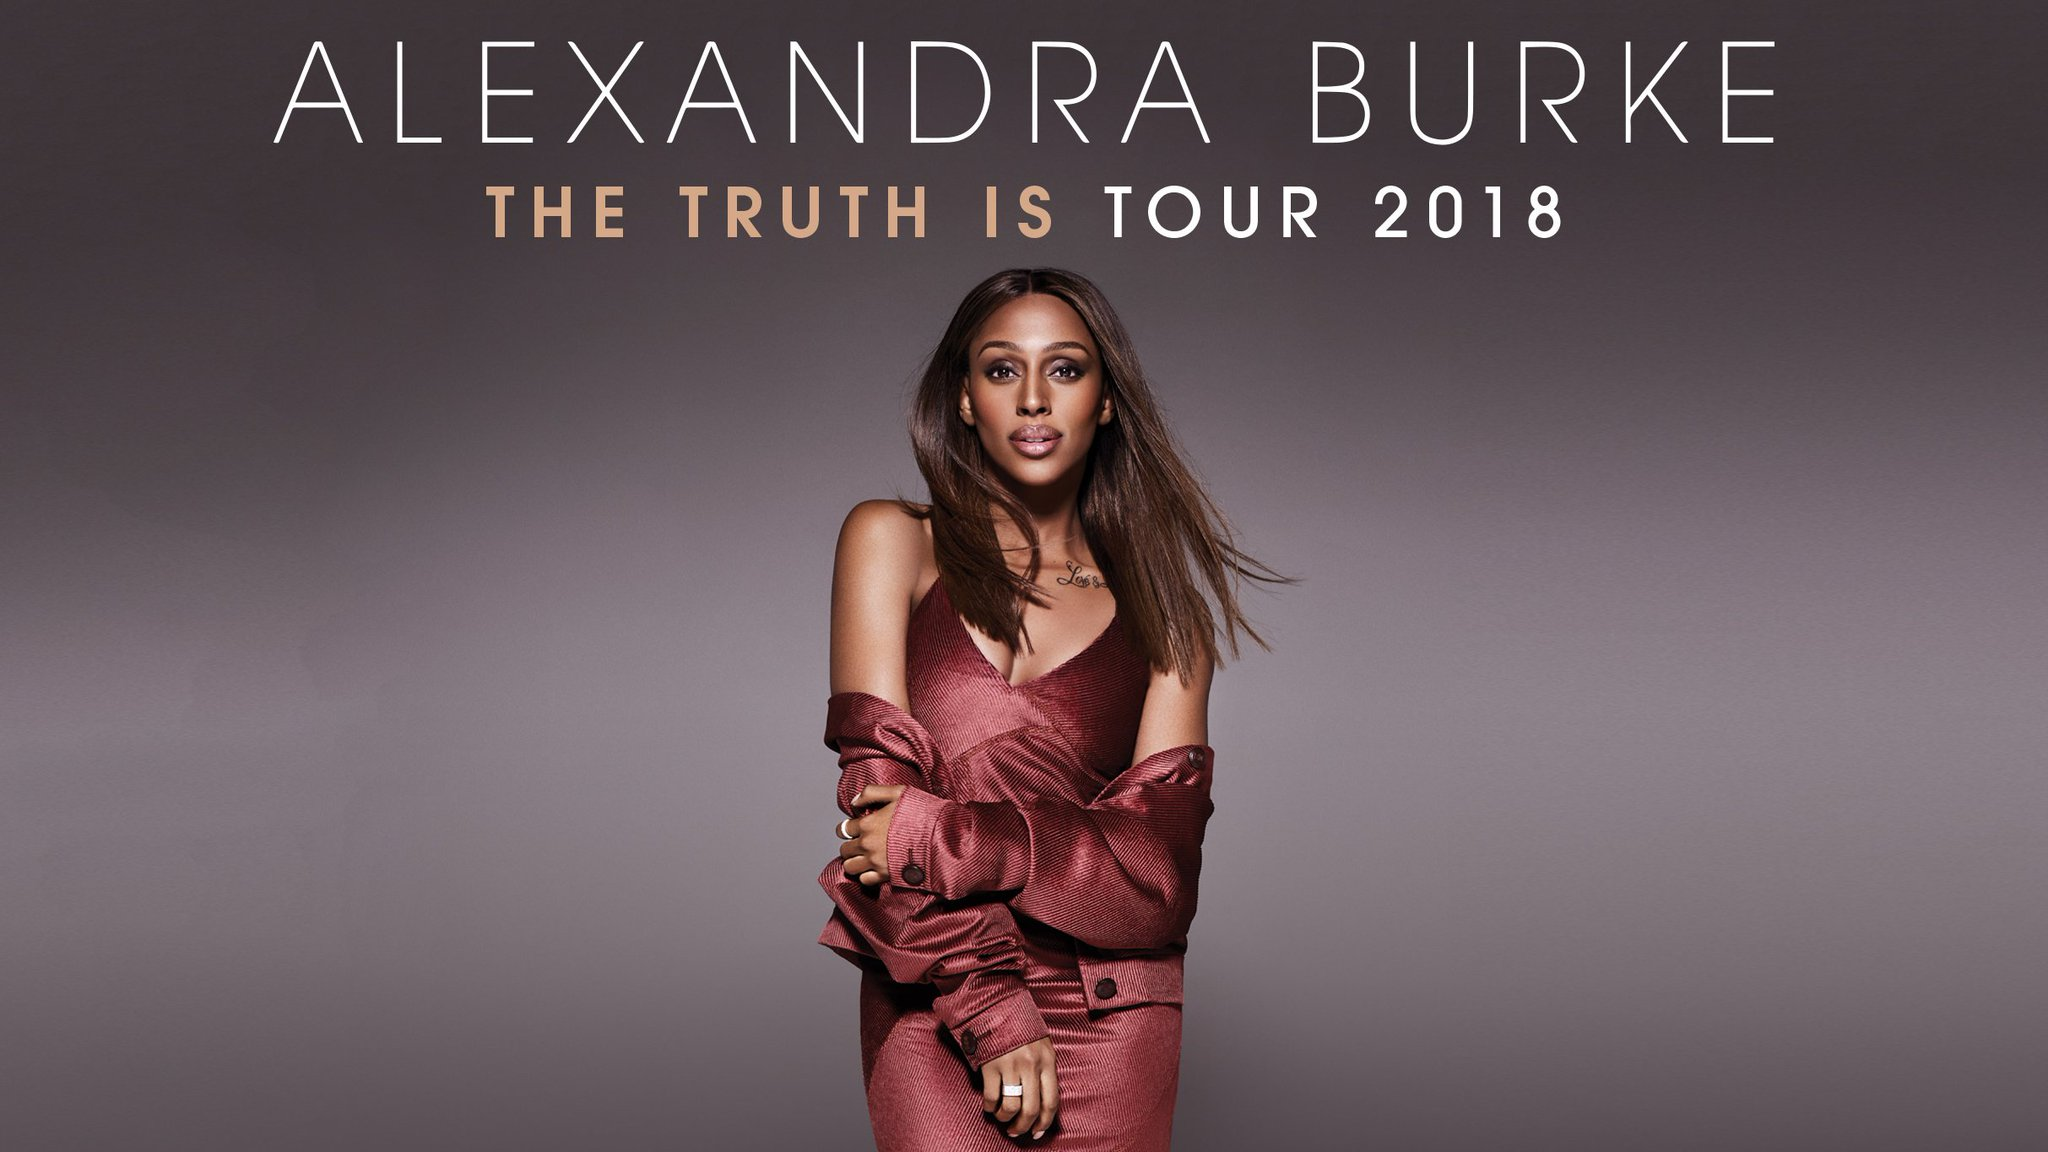 RT @tickx_: PRESALE: Here's how to get early access to @alexandramusic's tour tickets https://t.co/5O976aogC1 https://t.co/lKER3kpJS1